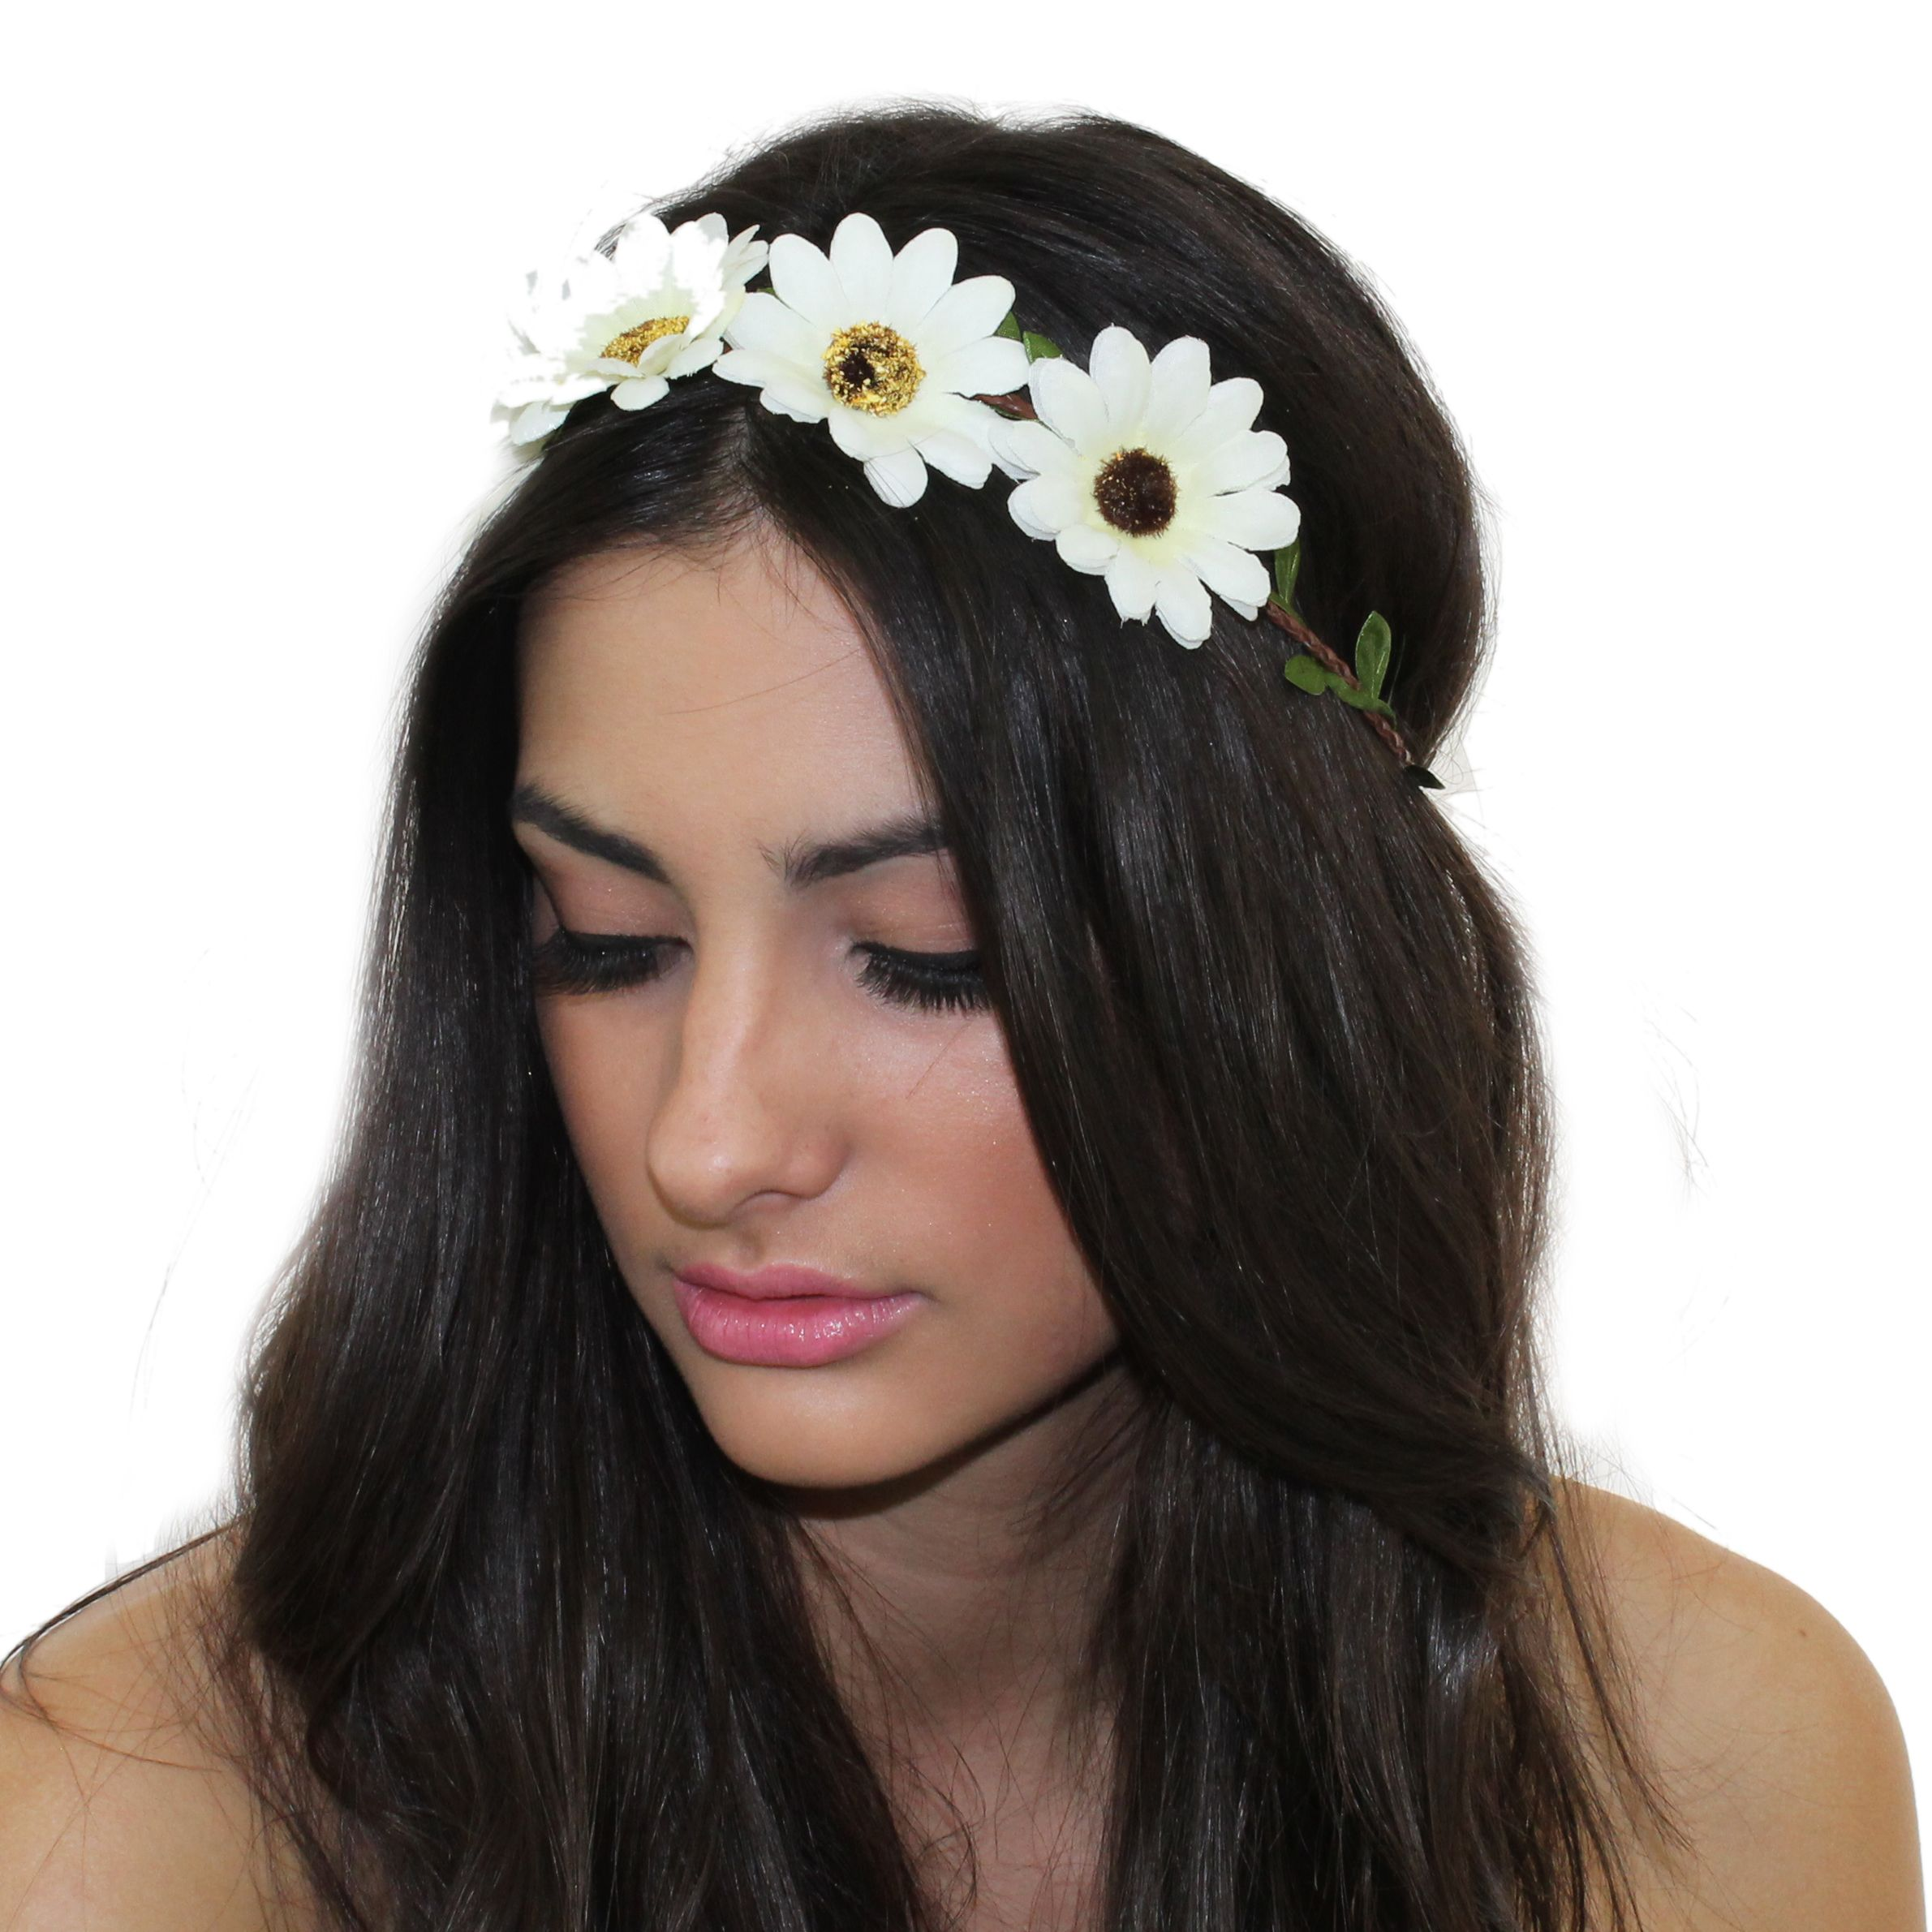 Dainty daisy flower crown kristin perry accessories coachella dainty daisy flower crown kristin perry accessories izmirmasajfo